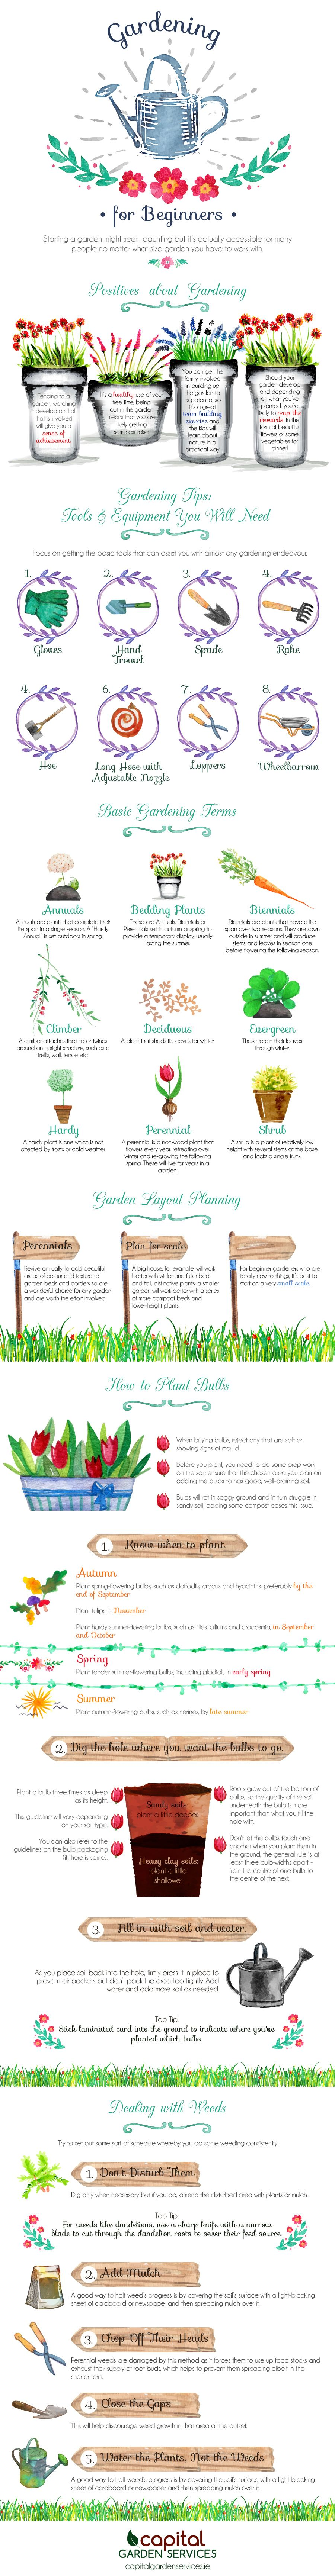 This infographic by Capital Garden Services is designed to help beginners get started in the garden. It contains the basic knowledge of gardening and is a good guide for beginners.